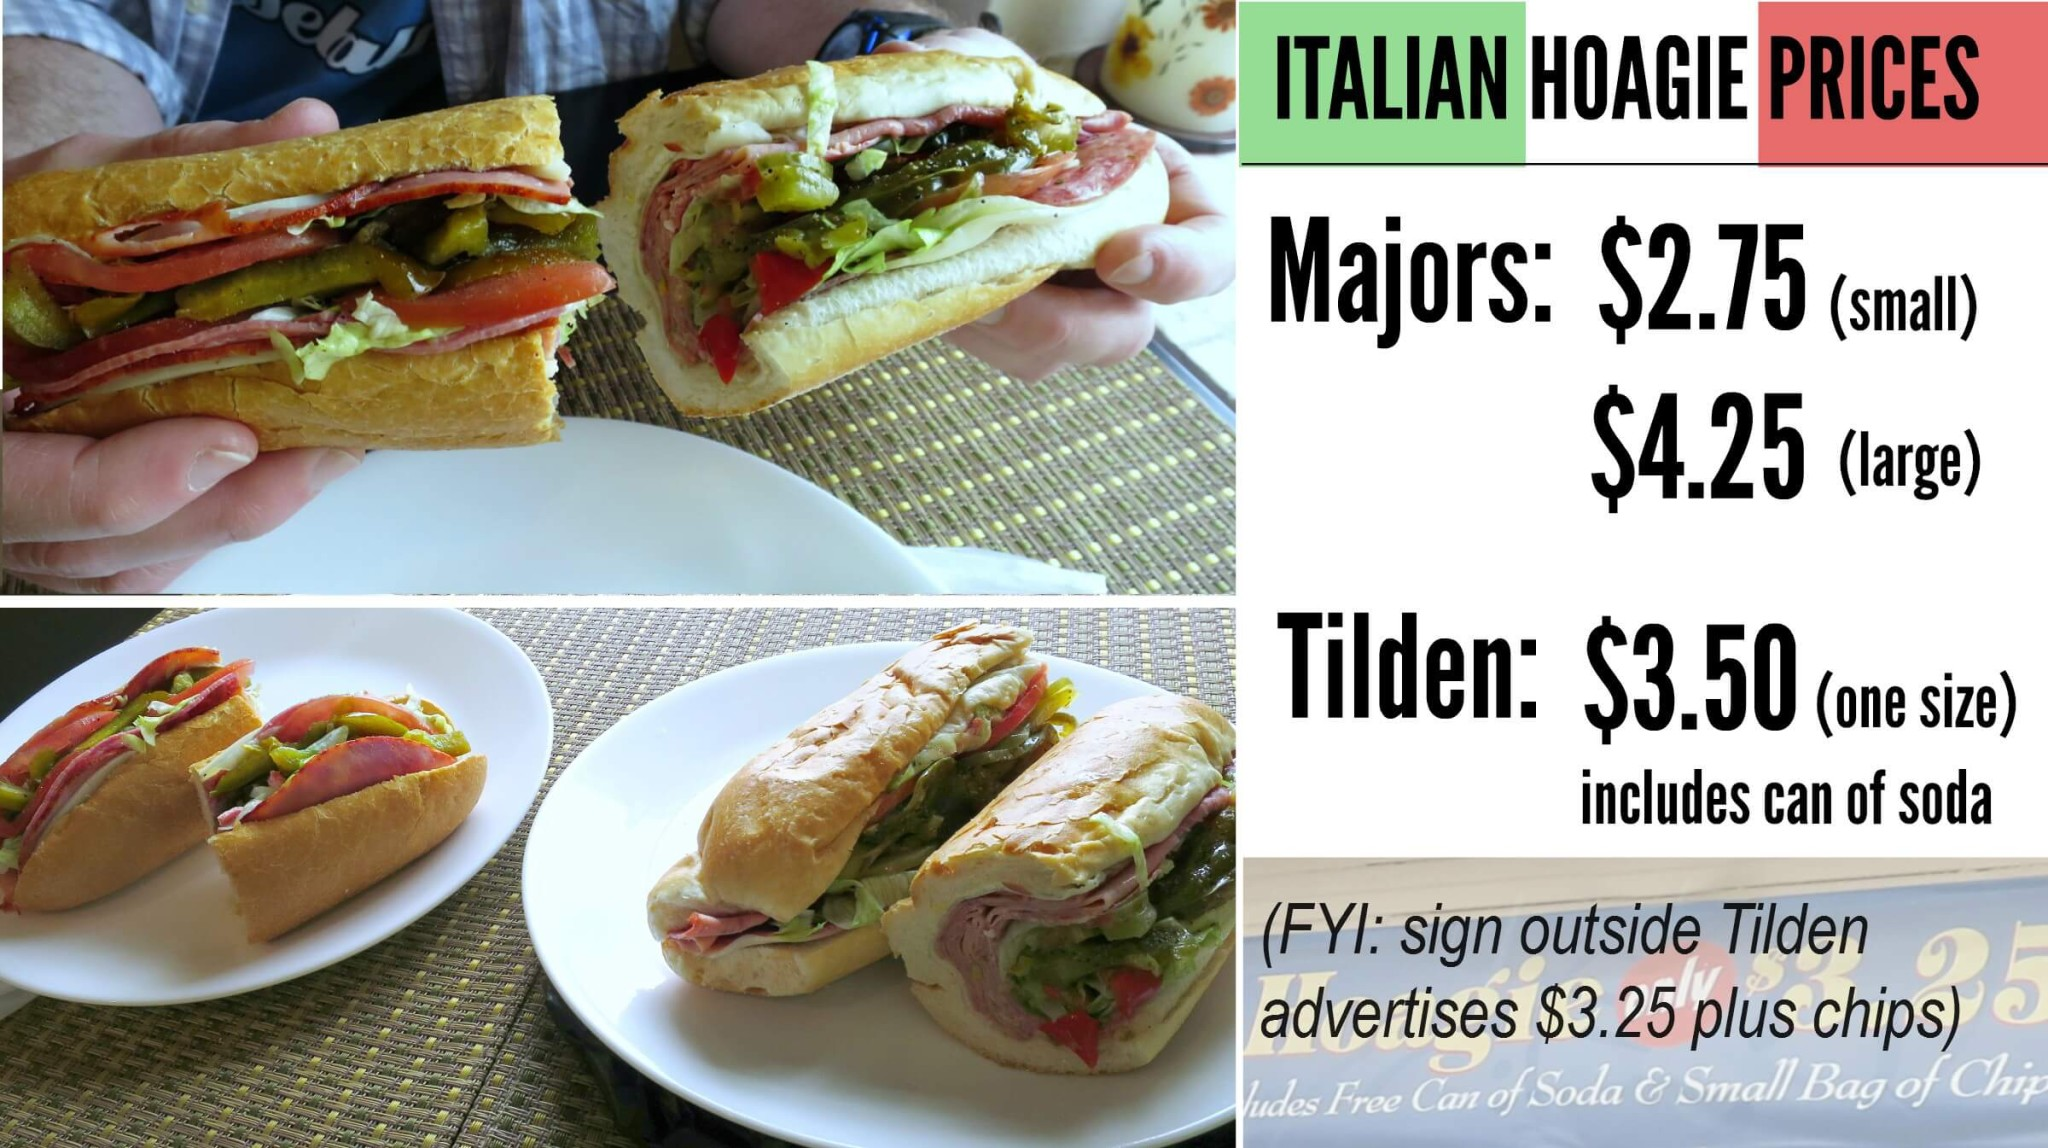 EastFallsLocal COLLAGE TIlden v Majors italian hoagie prices text